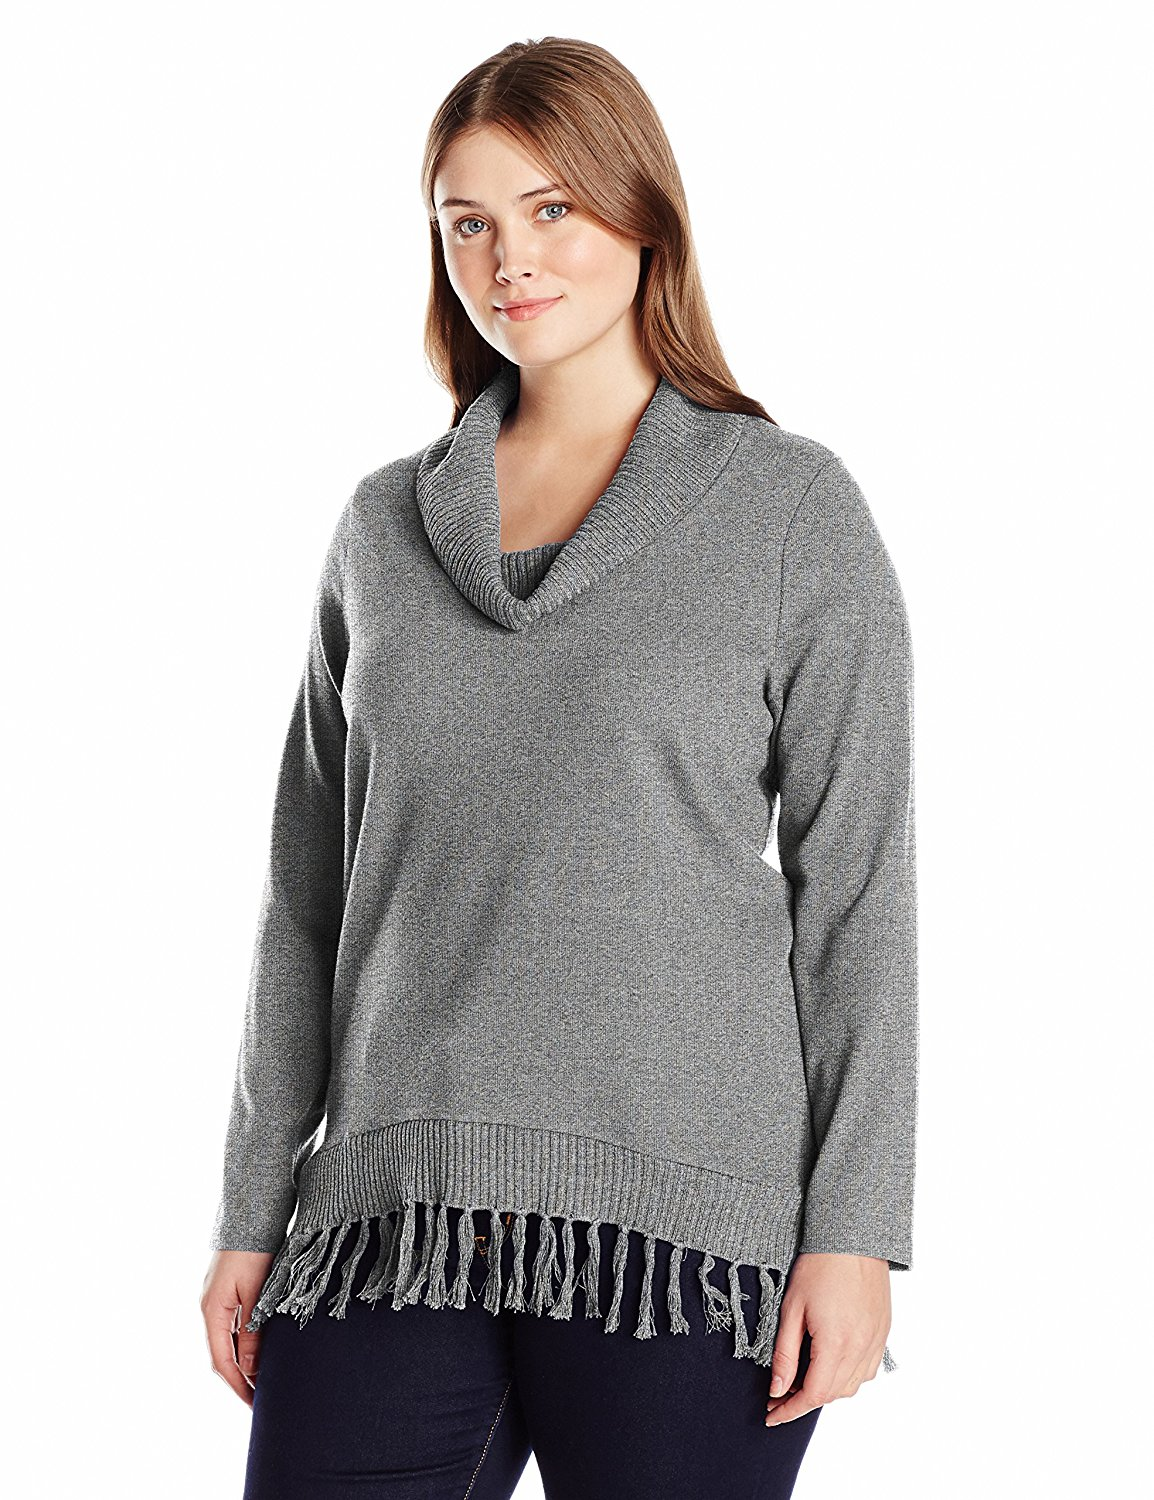 34b8506064a Get Quotations · Rafaella Women s Plus Size Cowl Neck Knit with Fringe  Sweater